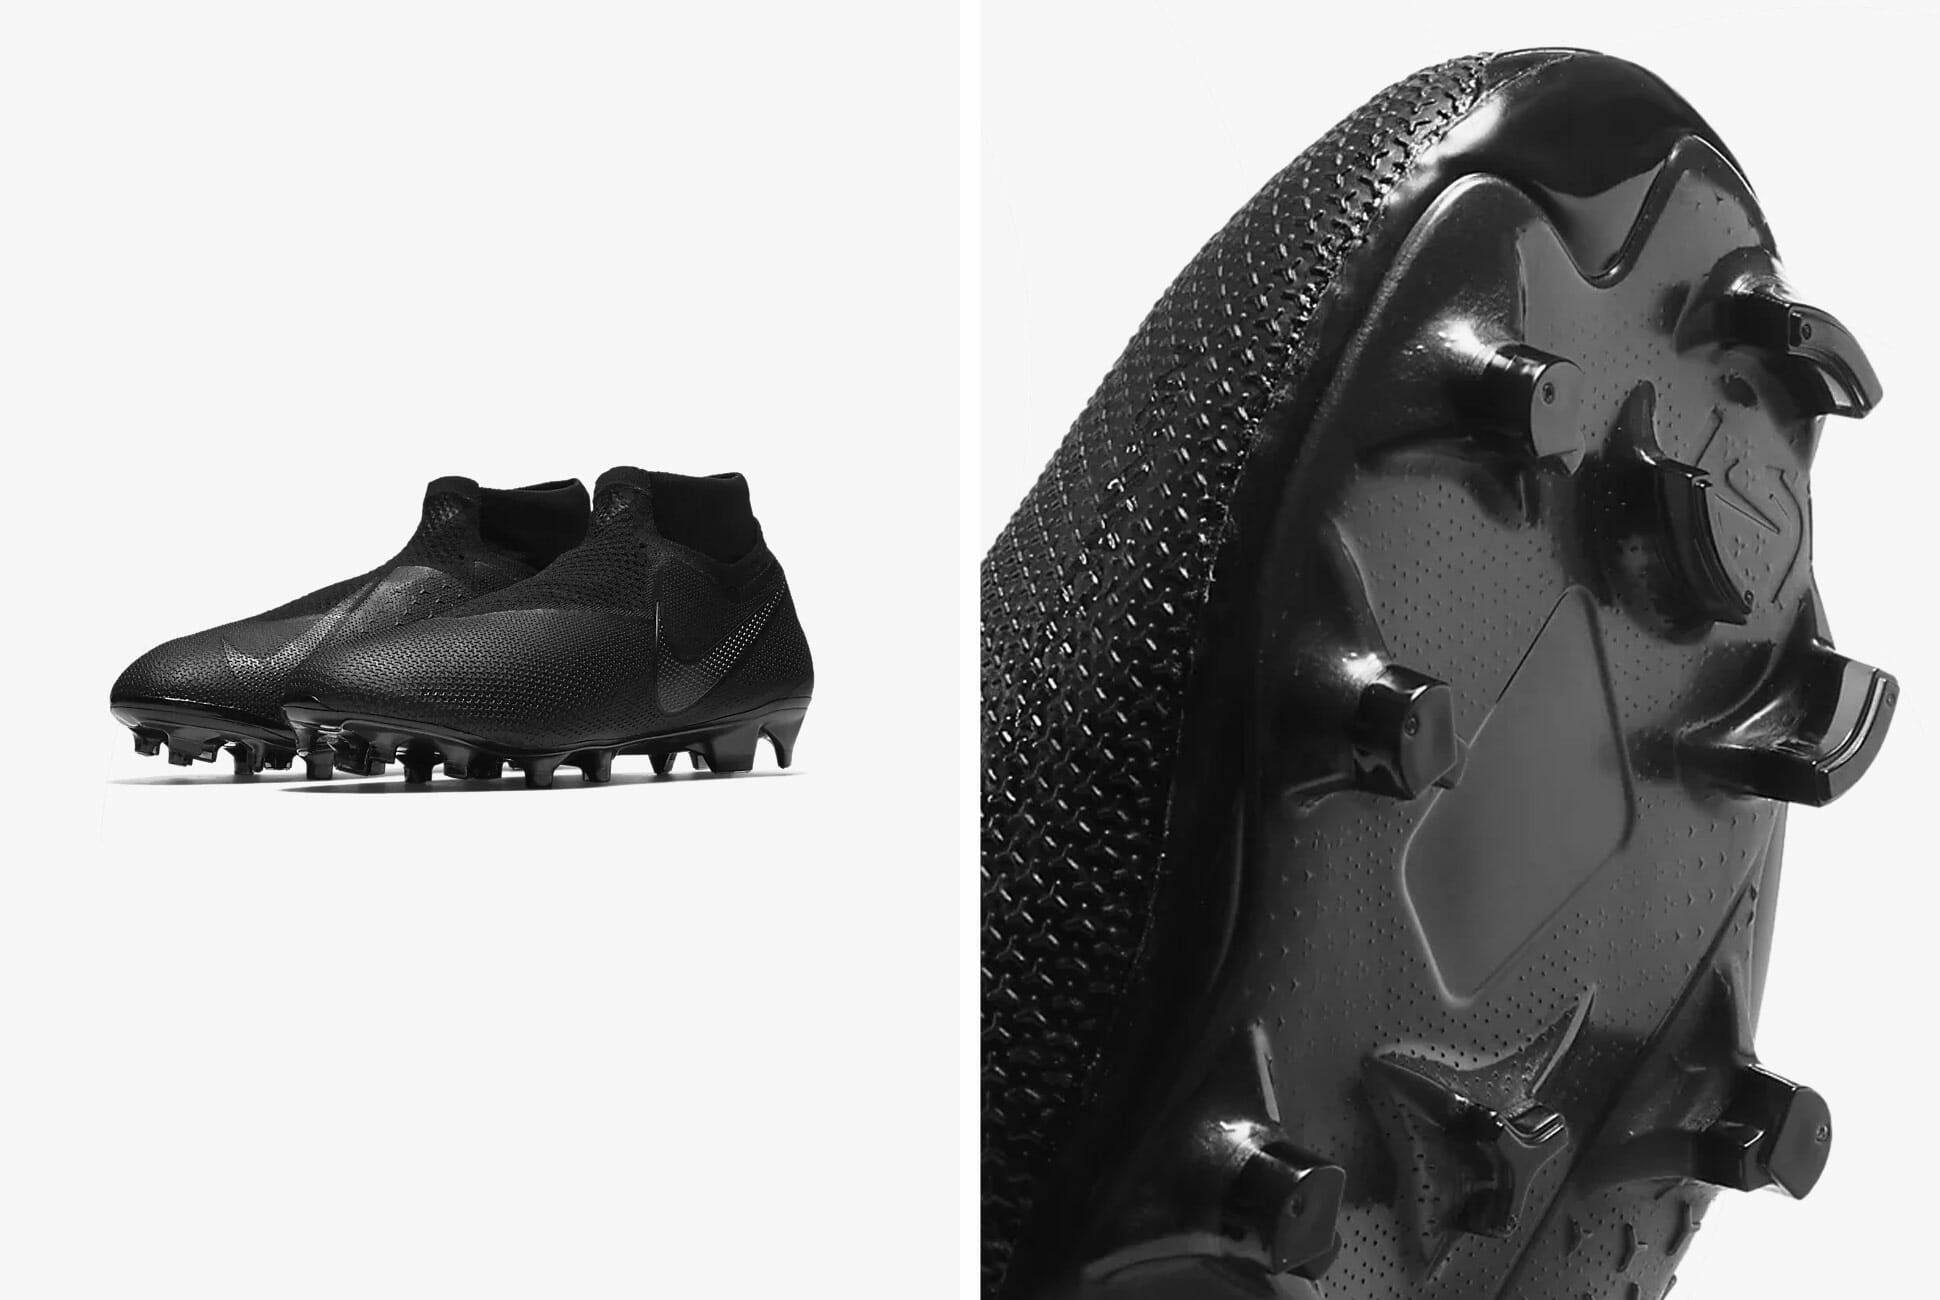 Look at These Soccer Cleats